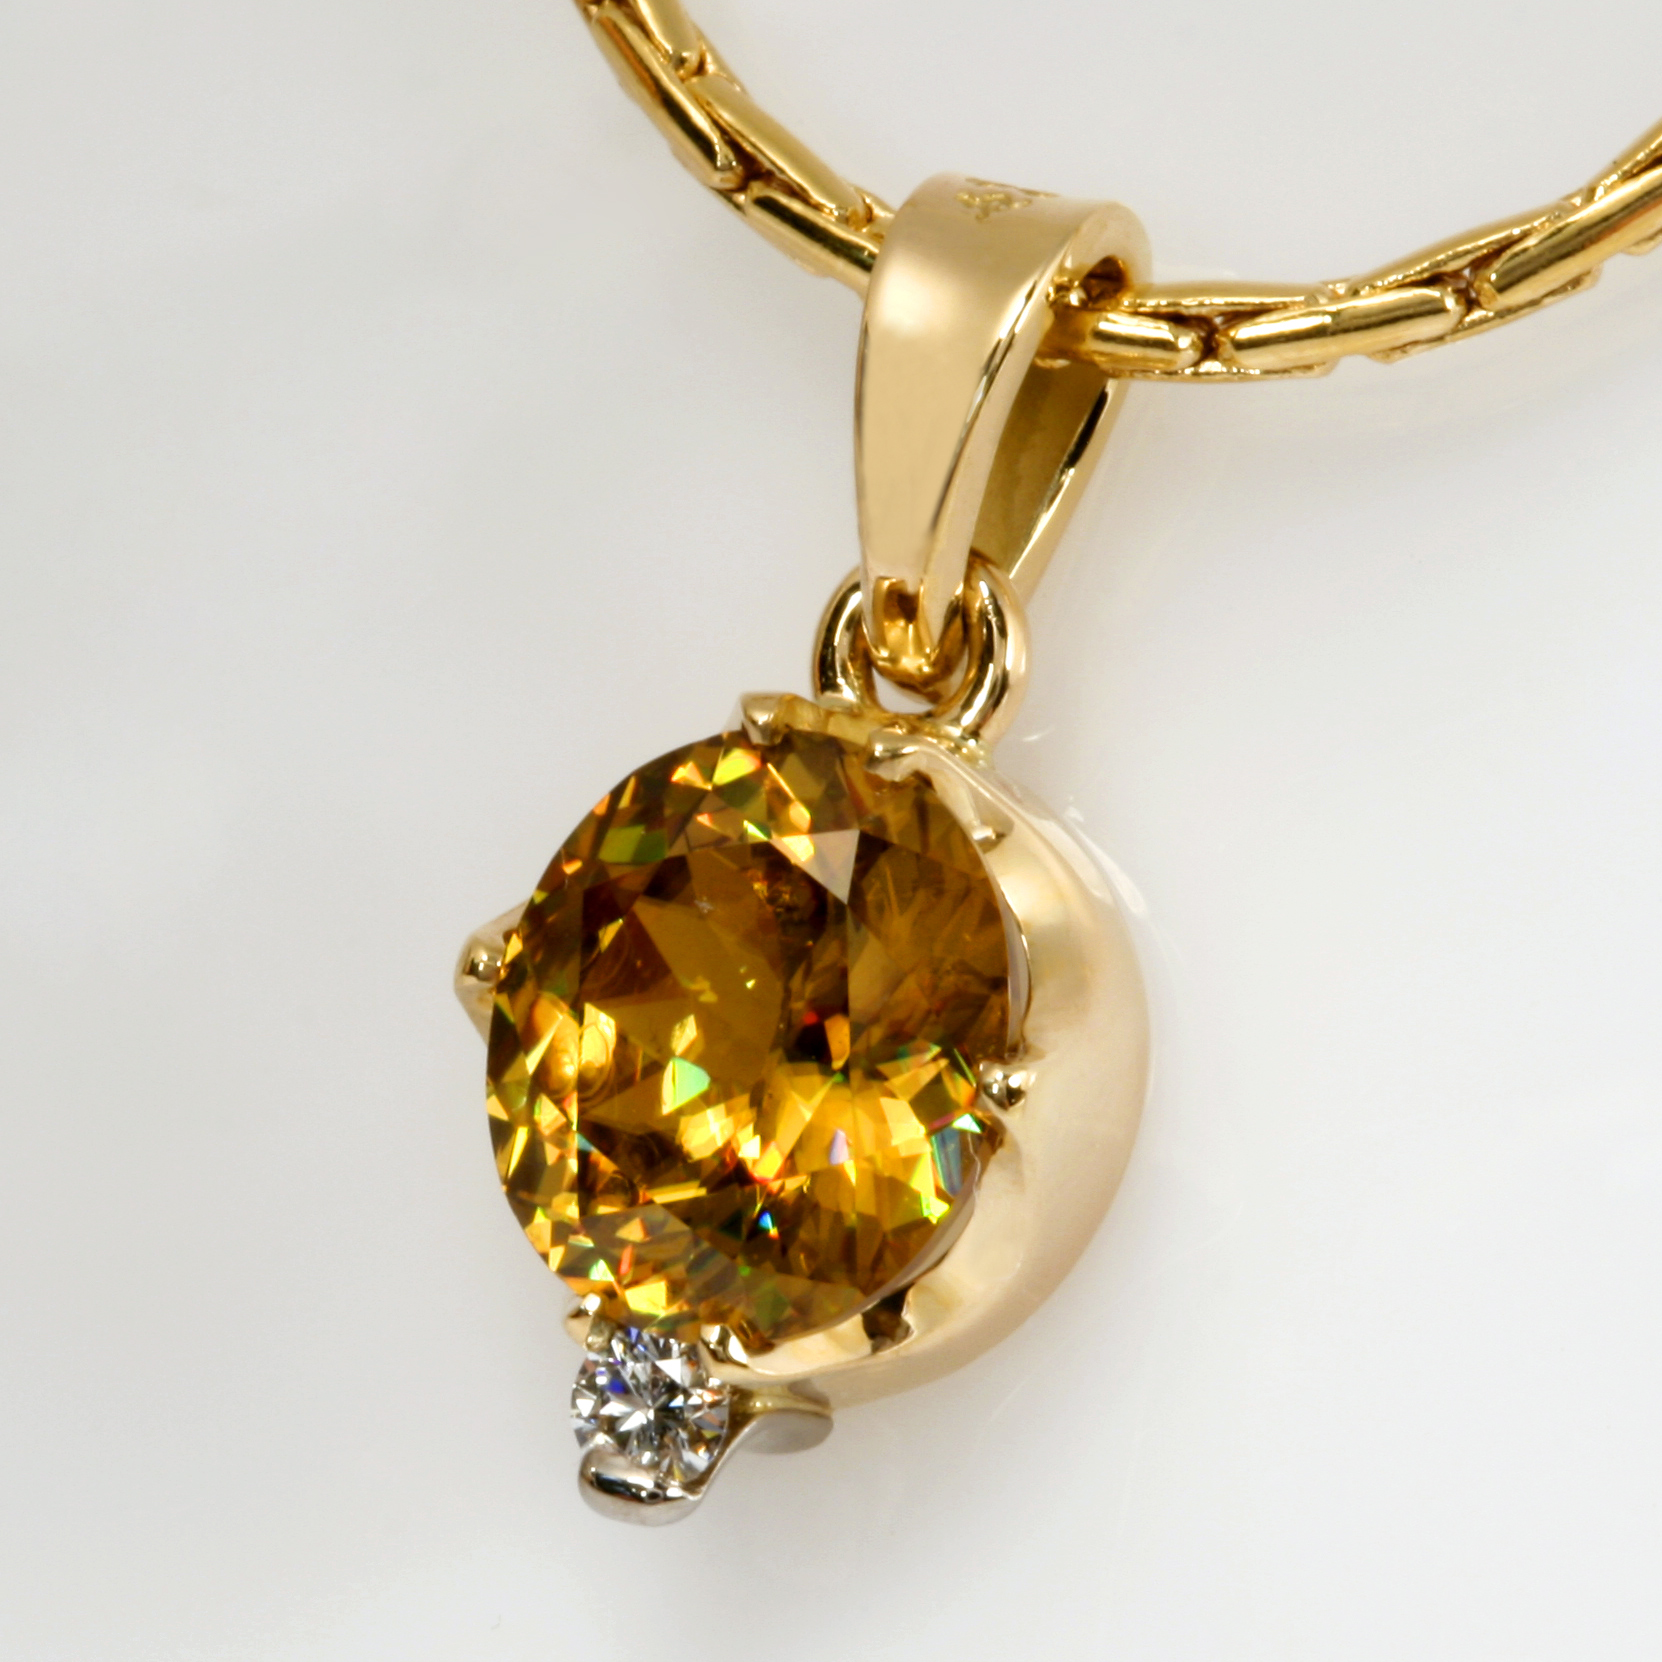 Handmade ladies 18ct yellow gold pendant featuring a Sphene and Diamond.